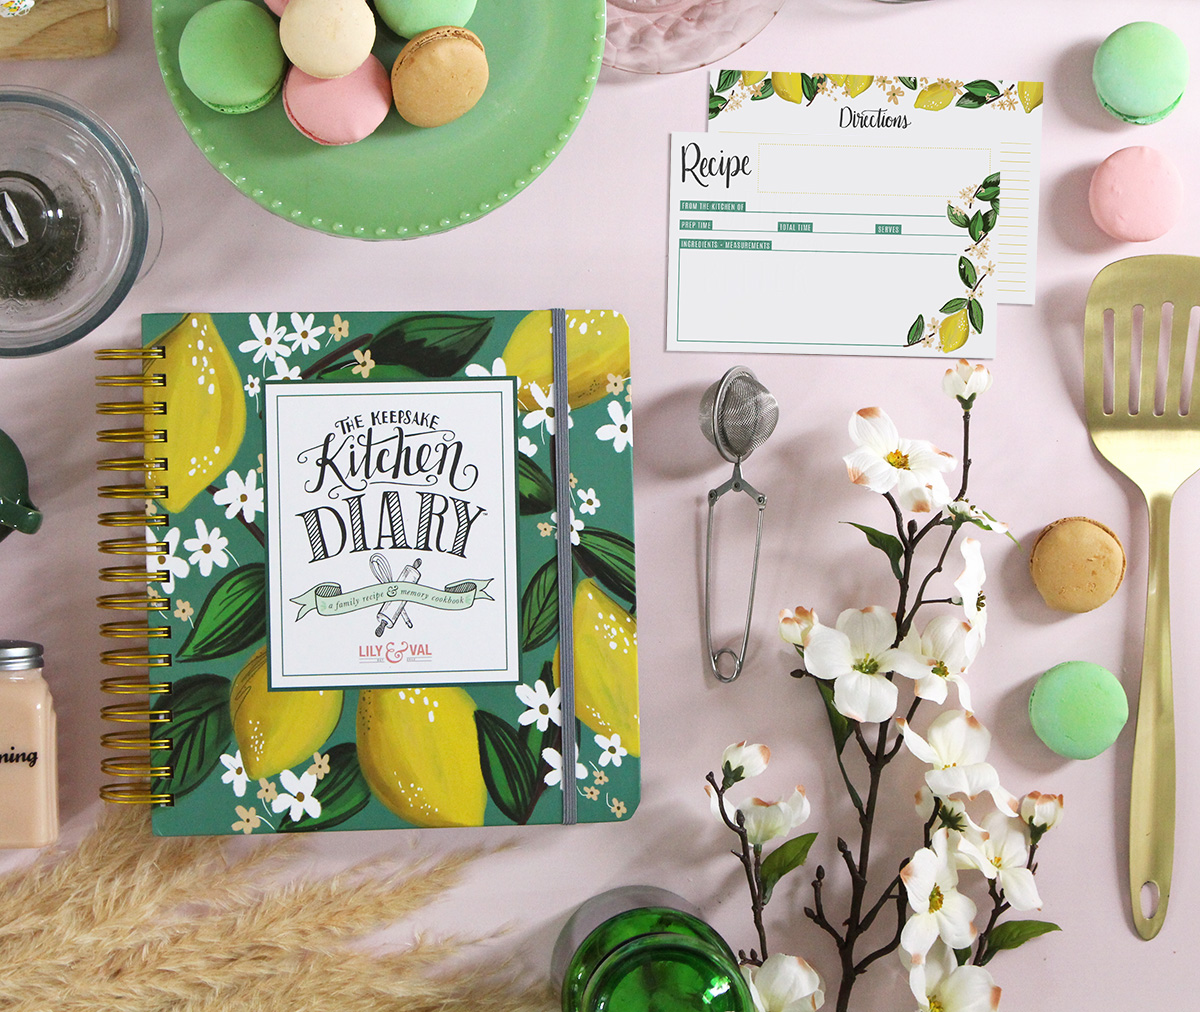 The whimsical lemons Keepsake Kitchen Diary pairs beautifully with the loose lemon recipe cards